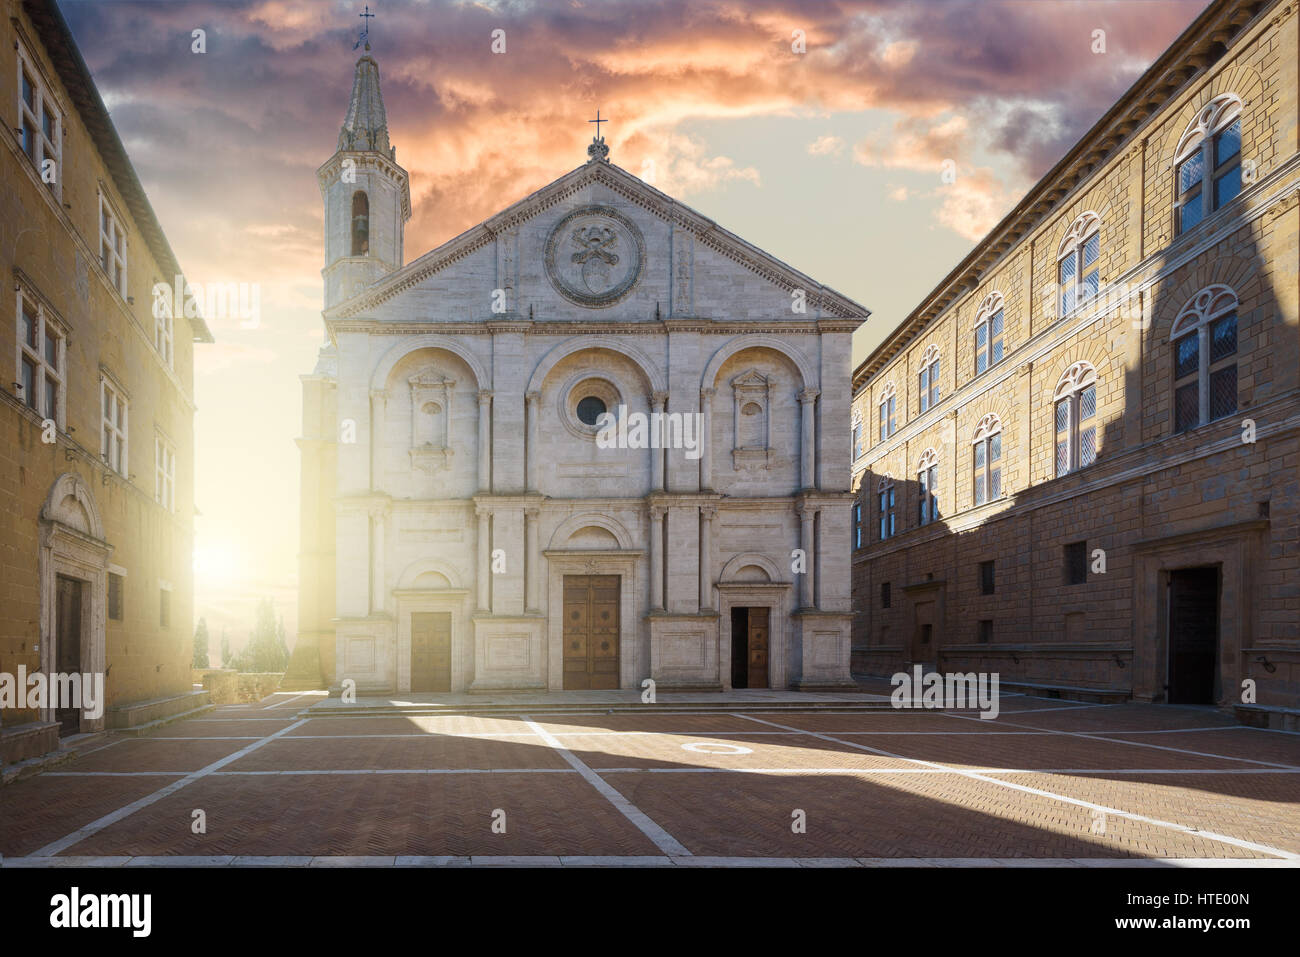 Famous square in front of Duomo in Pienza, ideal Tuscan town, Italy. - Stock Image